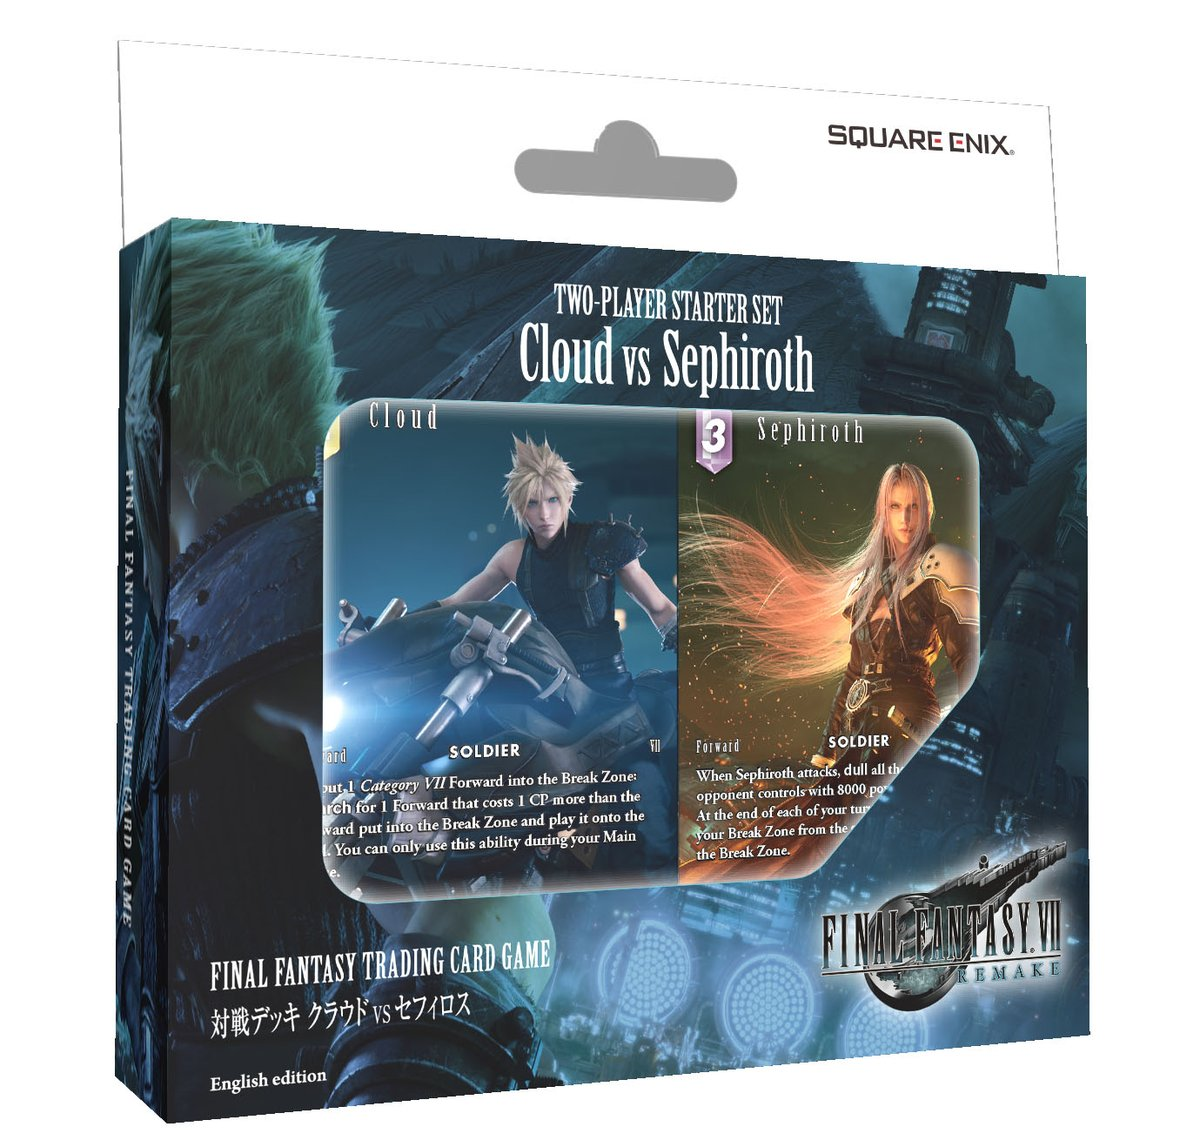 The @FinalFantasy TCG Cloud vs Sephiroth Two-Player Starter Set will be available this Friday, 2/28!   We'll be selling it at our Merch booth at PAX East this week, in addition to holding FFTCG demo sessions and giving out promo cards! Please stop by!